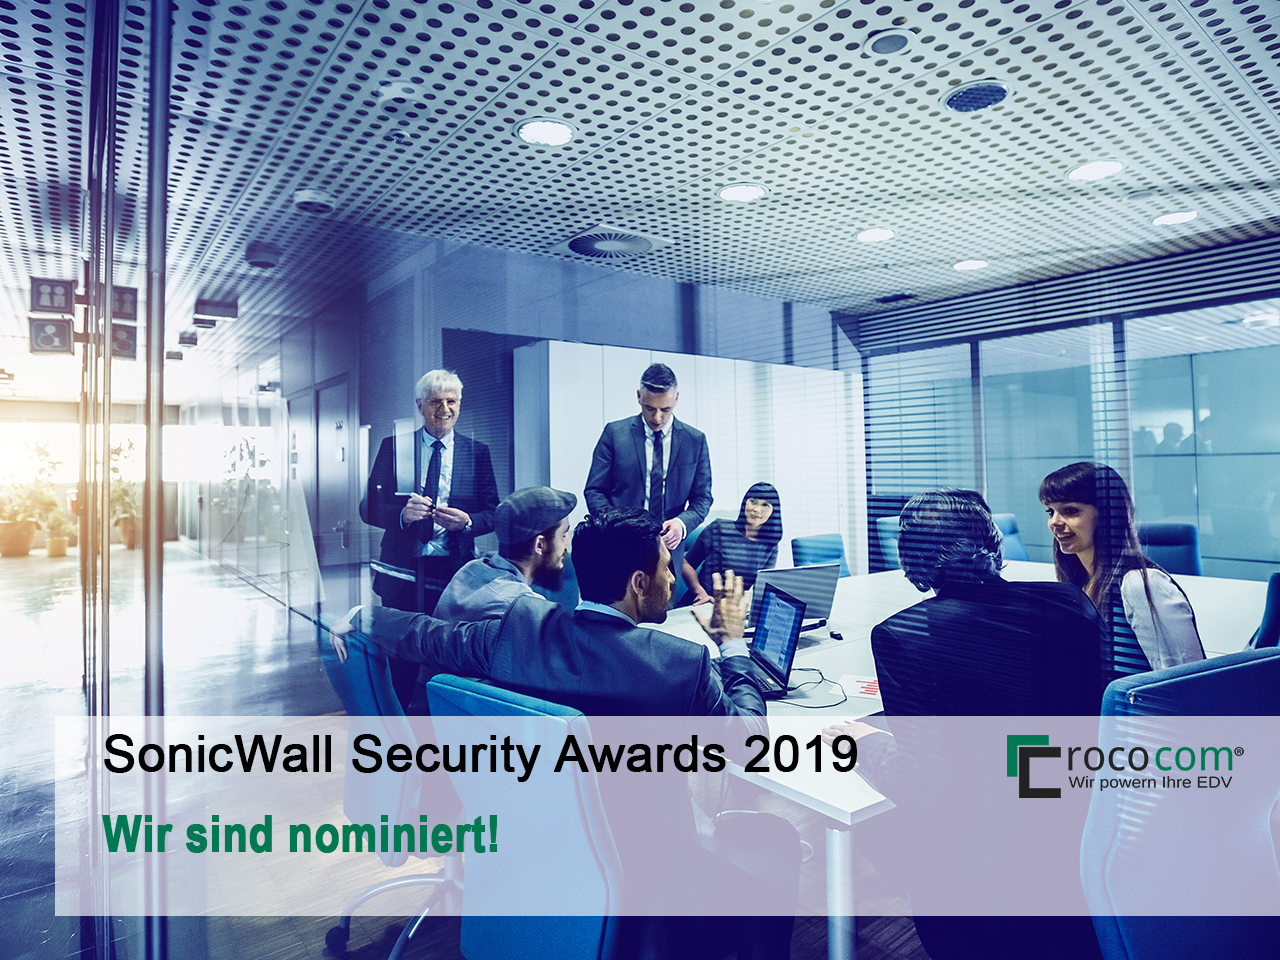 SonicWall Security Awards 2019